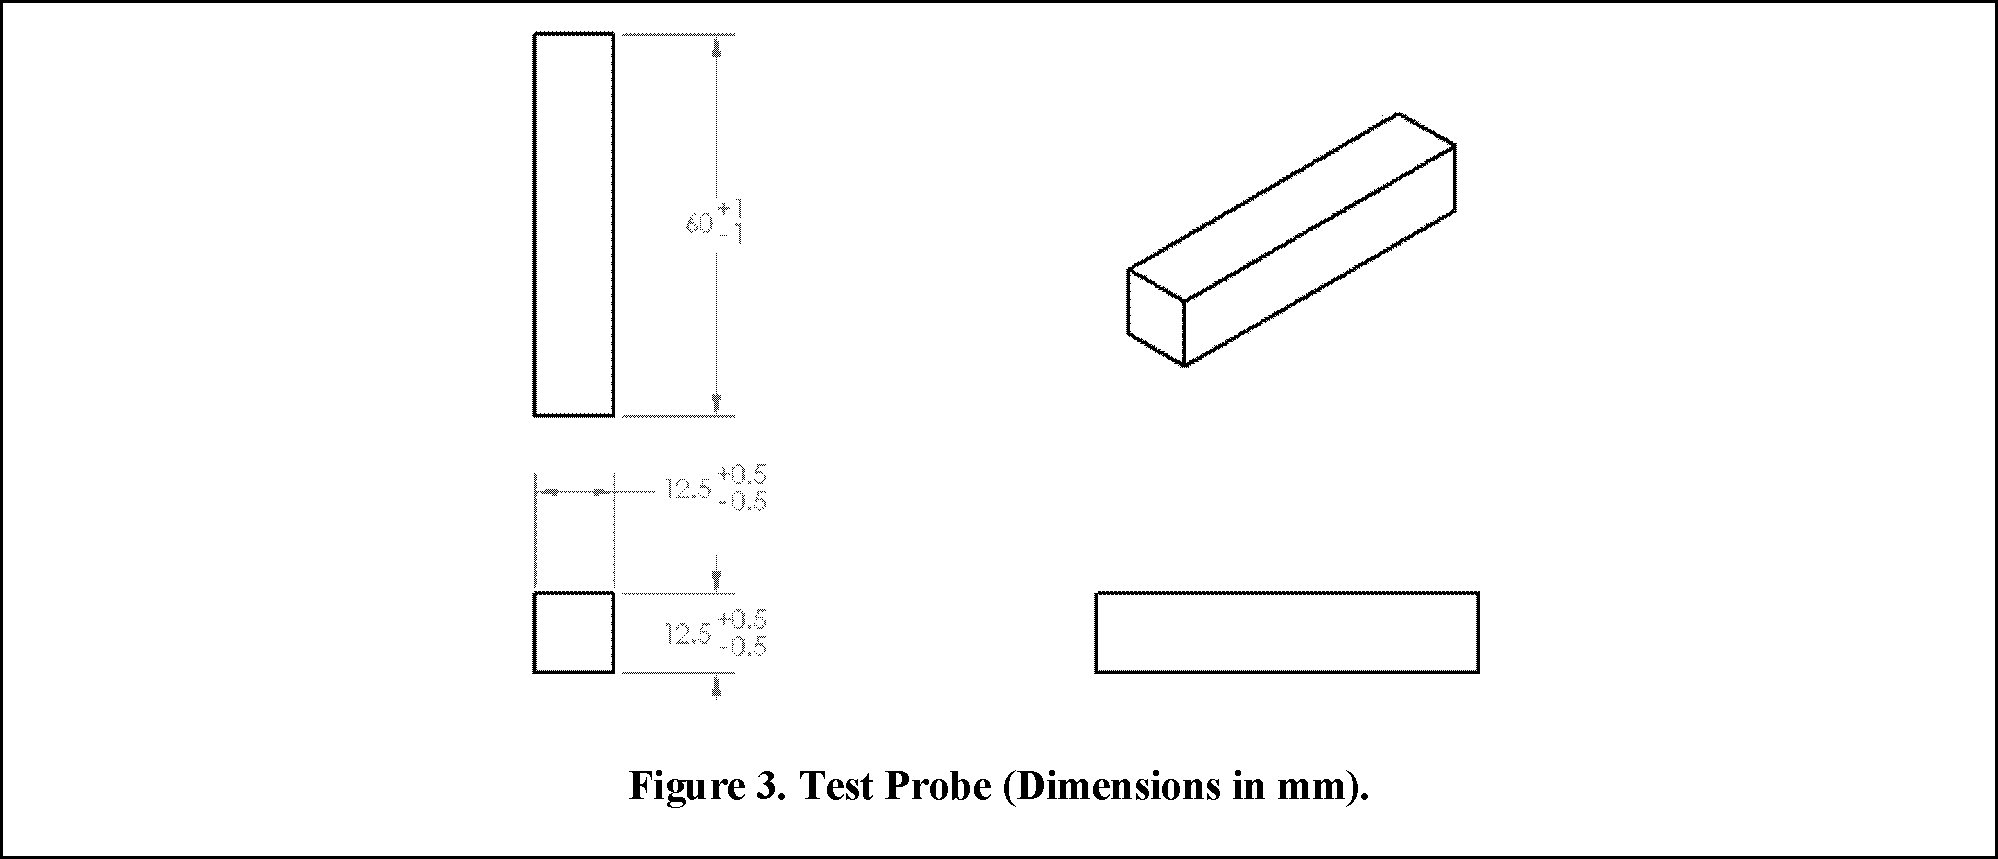 small resolution of  triggering purposes staff used a test probe that represents the conductive layer of human flesh once the epidermis has been cut by a table saw blade